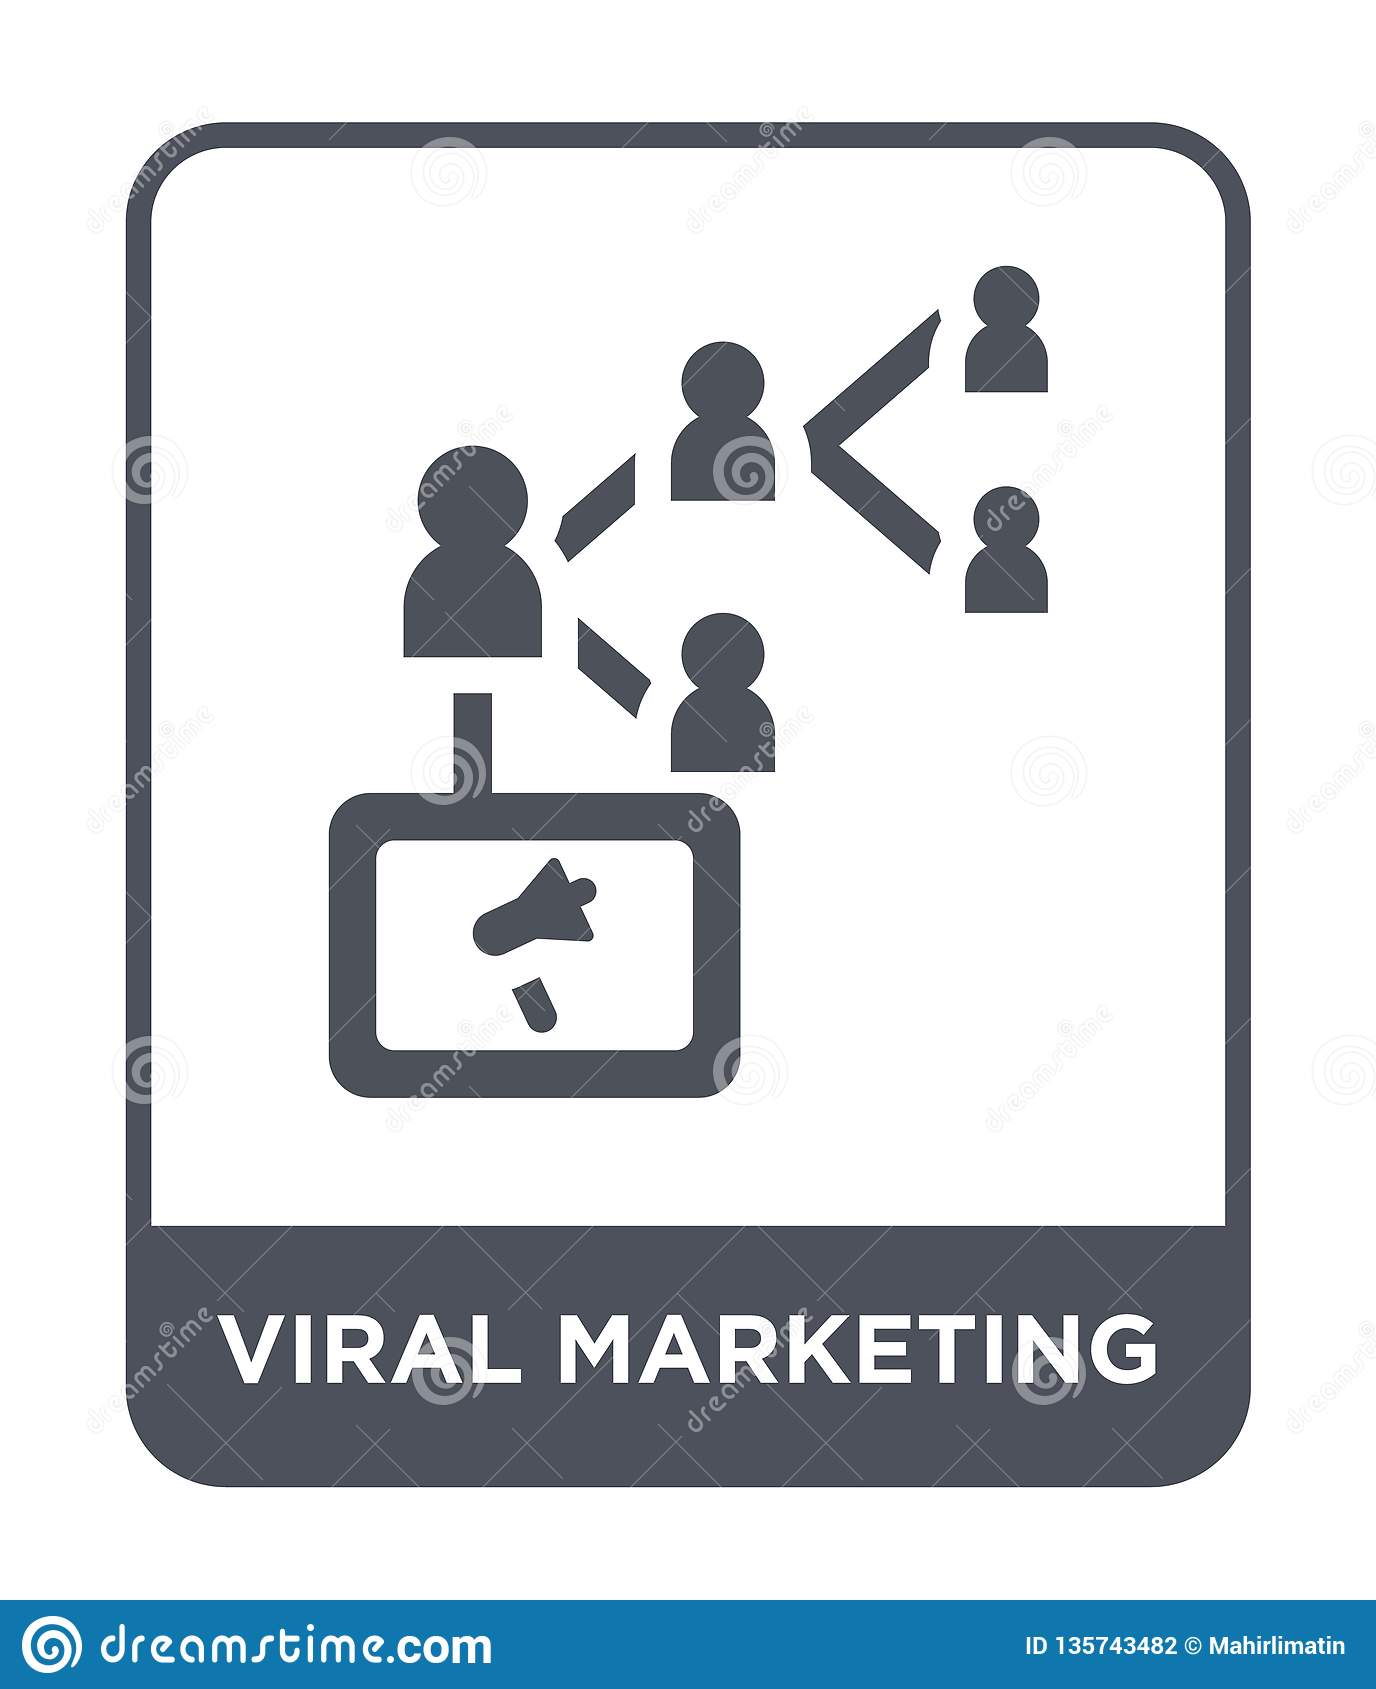 viral marketing icon in trendy design style. viral marketing icon isolated on white background. viral marketing vector icon simple